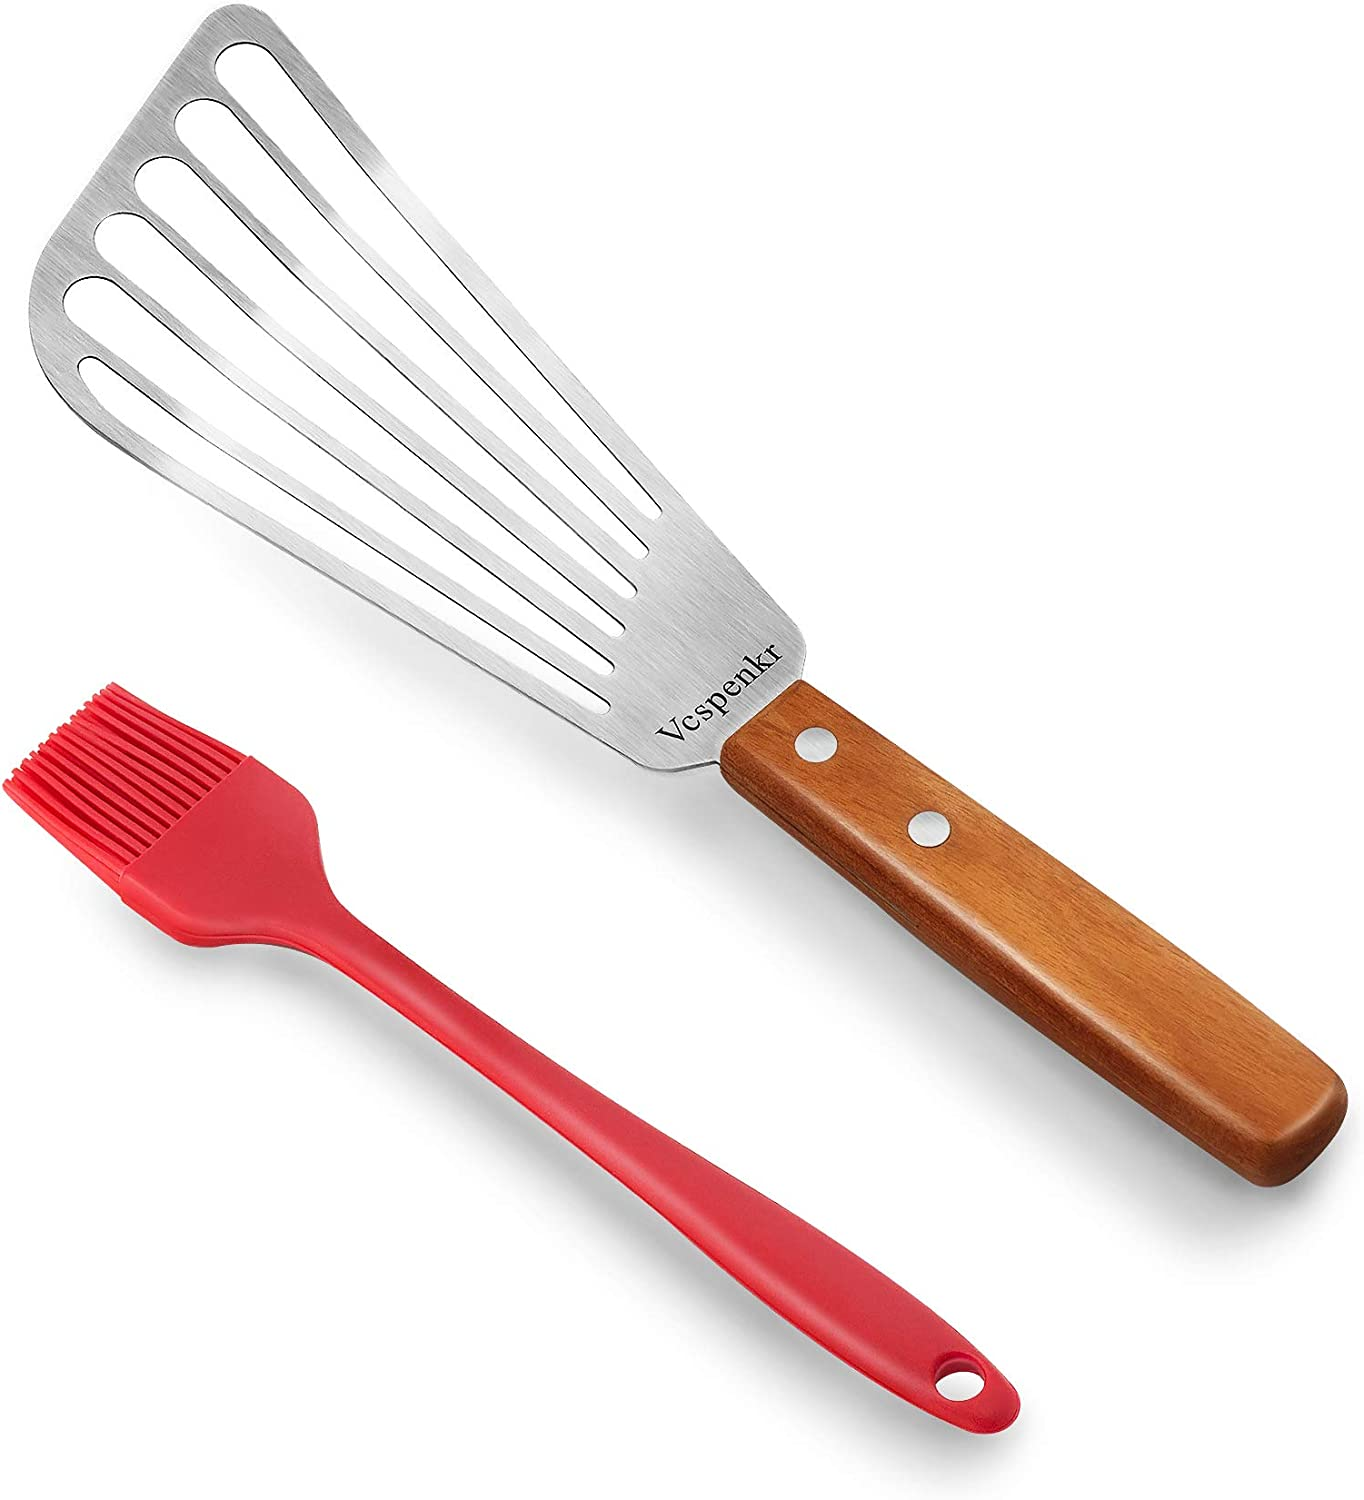 Vcspenkr Fish Spatula Turner online shop Smooth Solid Handle Turn Max 64% OFF Wood